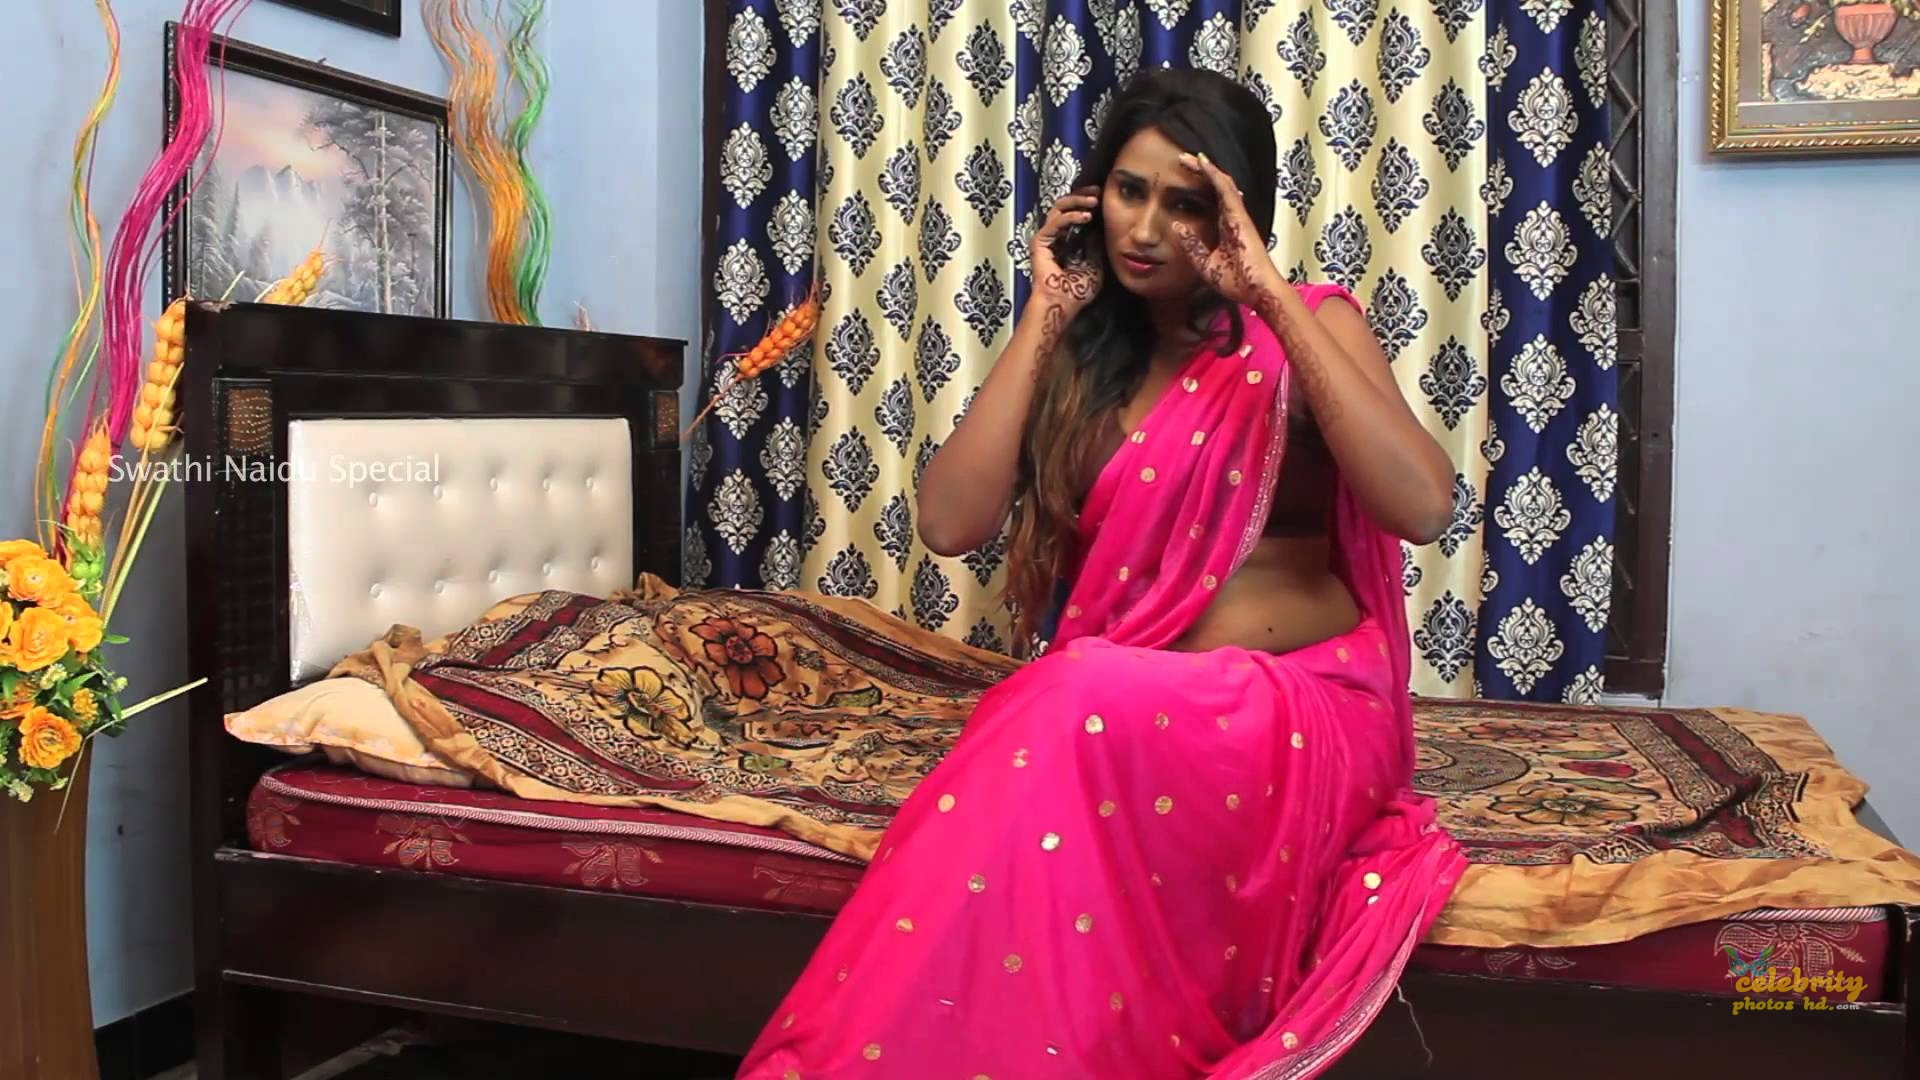 South Indian New Exclusive Hot Model Swathi Naidu (7)